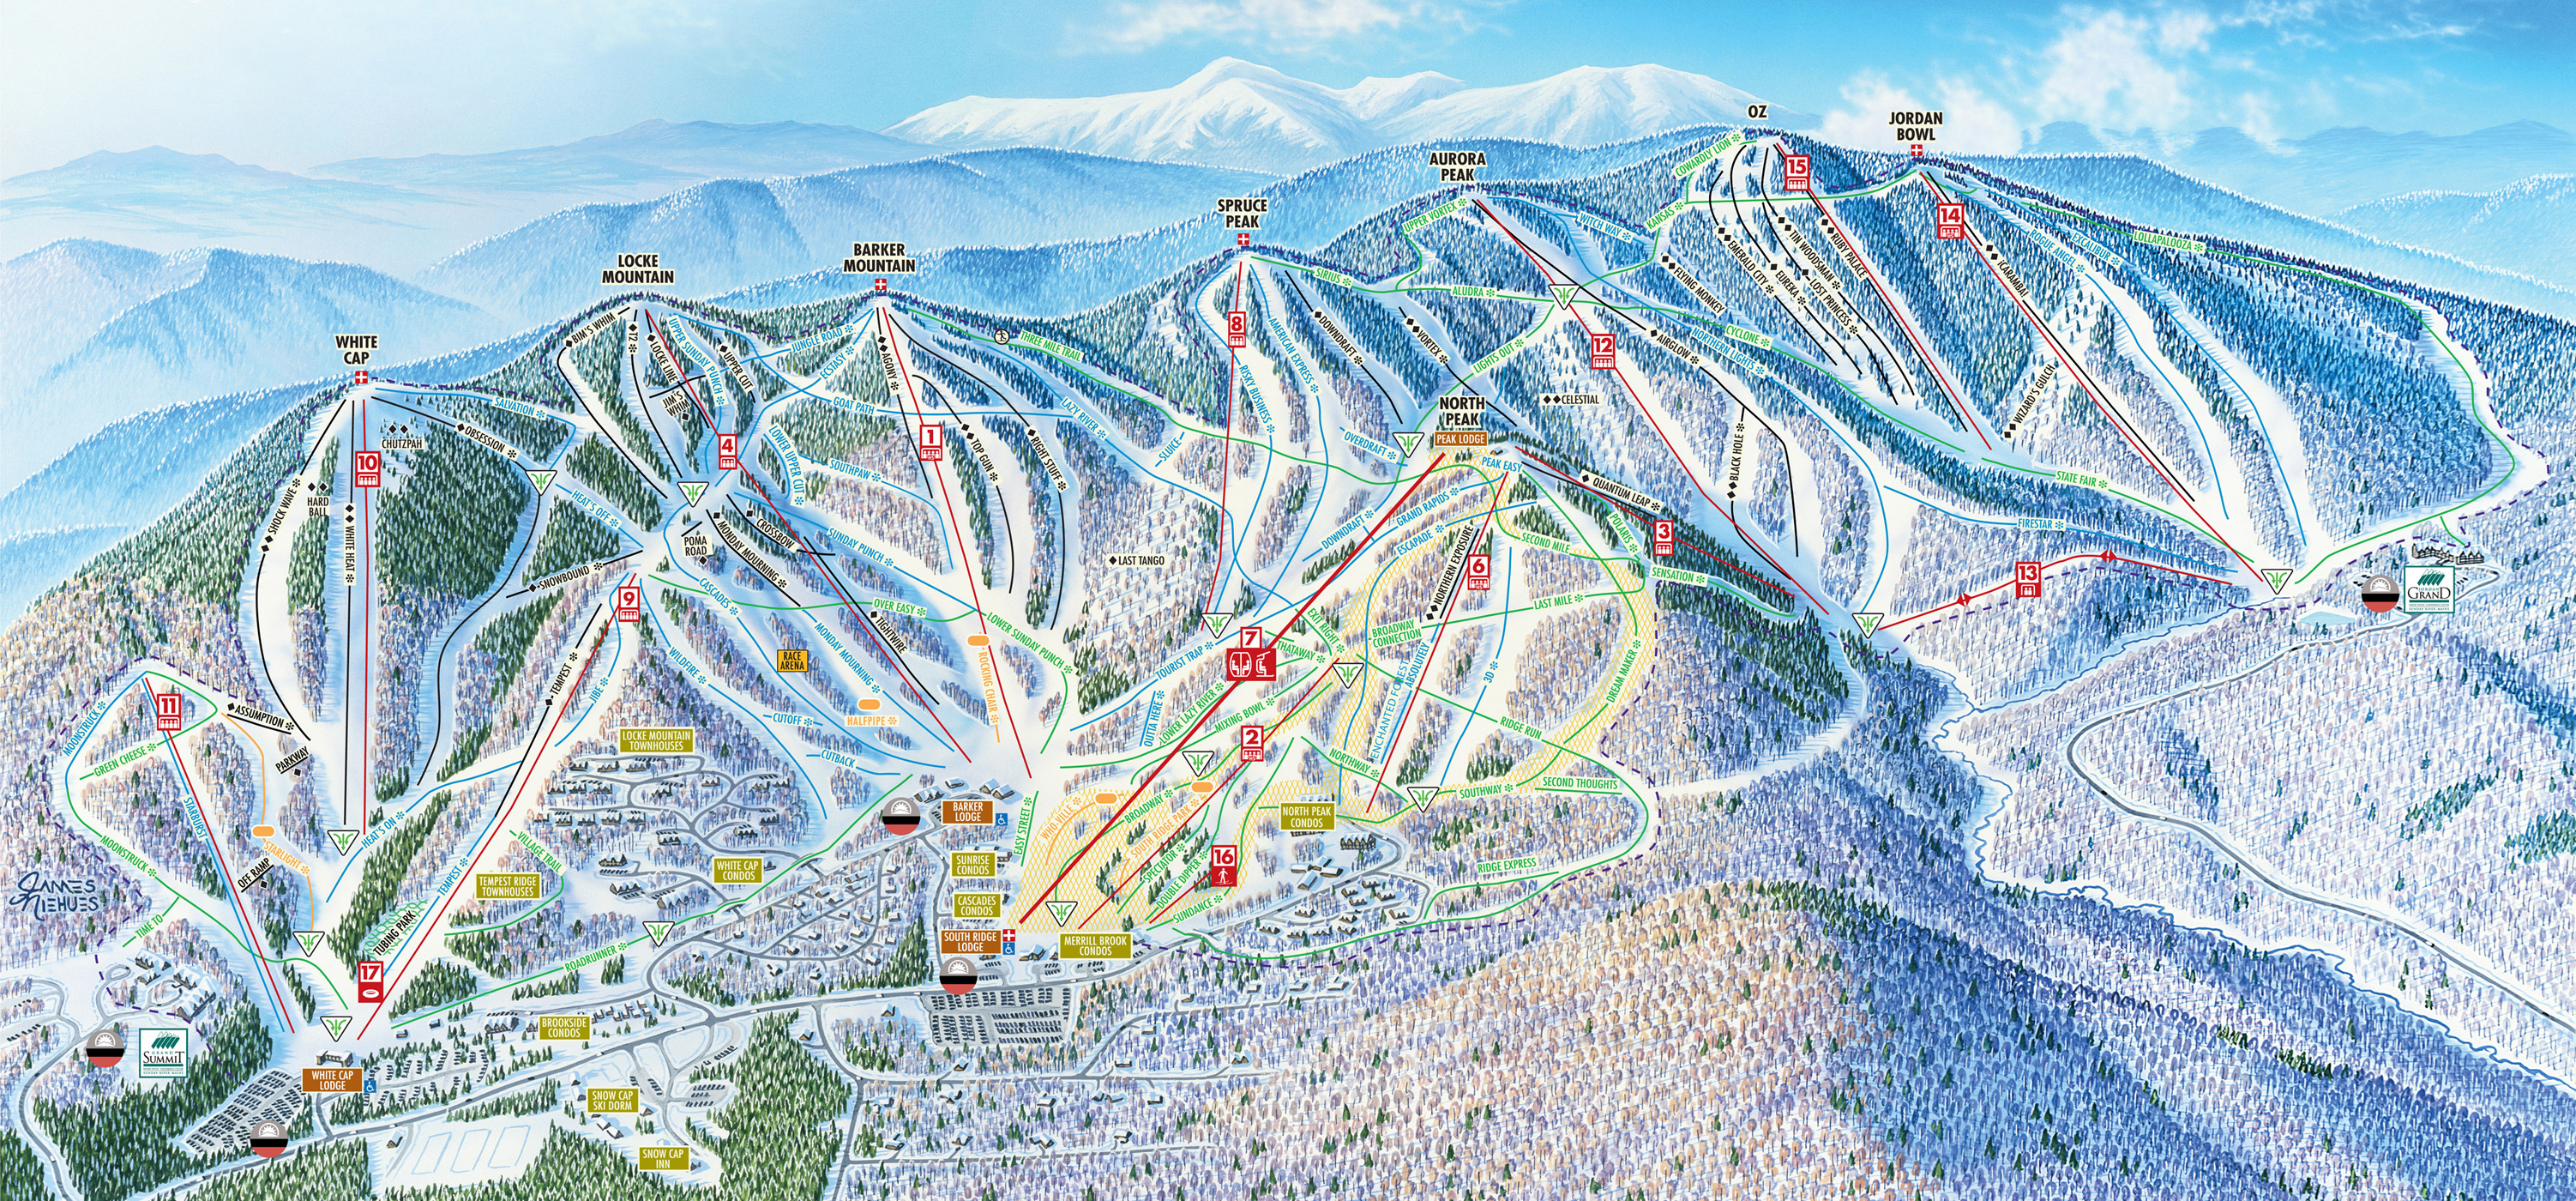 tahoe ski resort map with 459 on Enough Snow Kirkwood Ca Freeride World Tour Moved Snowbird Ut together with Truckee besides Liv Sir Releases Year End Resort Report also Squaw Valley Ski Resort together with Pope Beach.